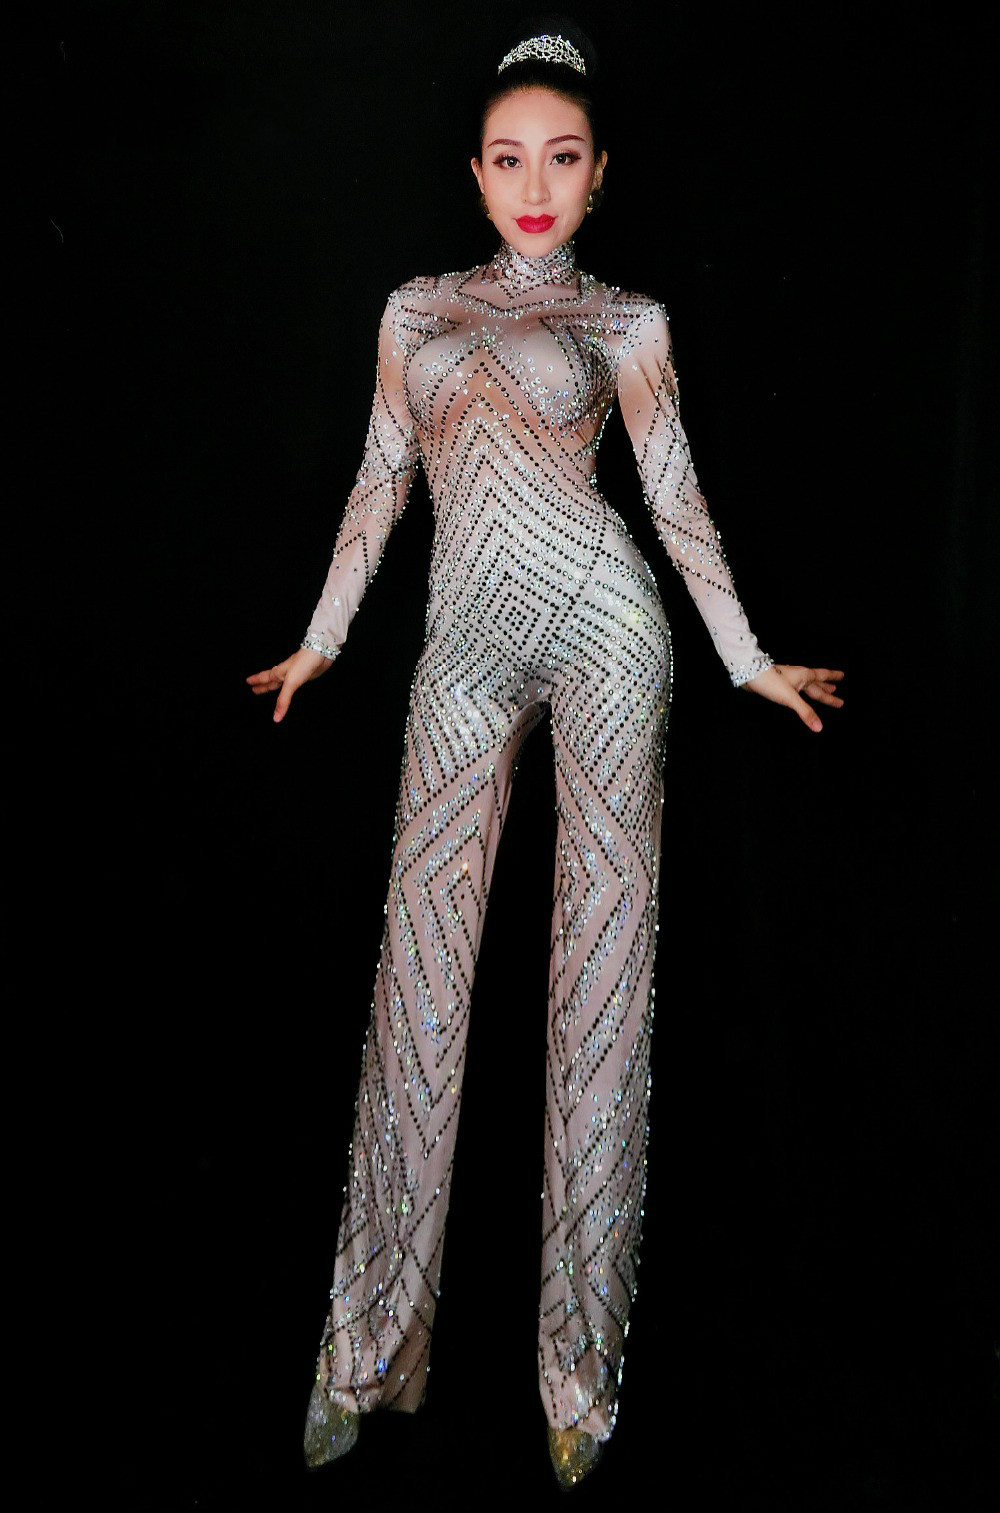 Womens Sparkly Crystals Nude Jumpsuit Stretch Stones Outfit Celebrate  Bright Rhinestones Bodysuit Female Singer Birthday Costume daca160b3